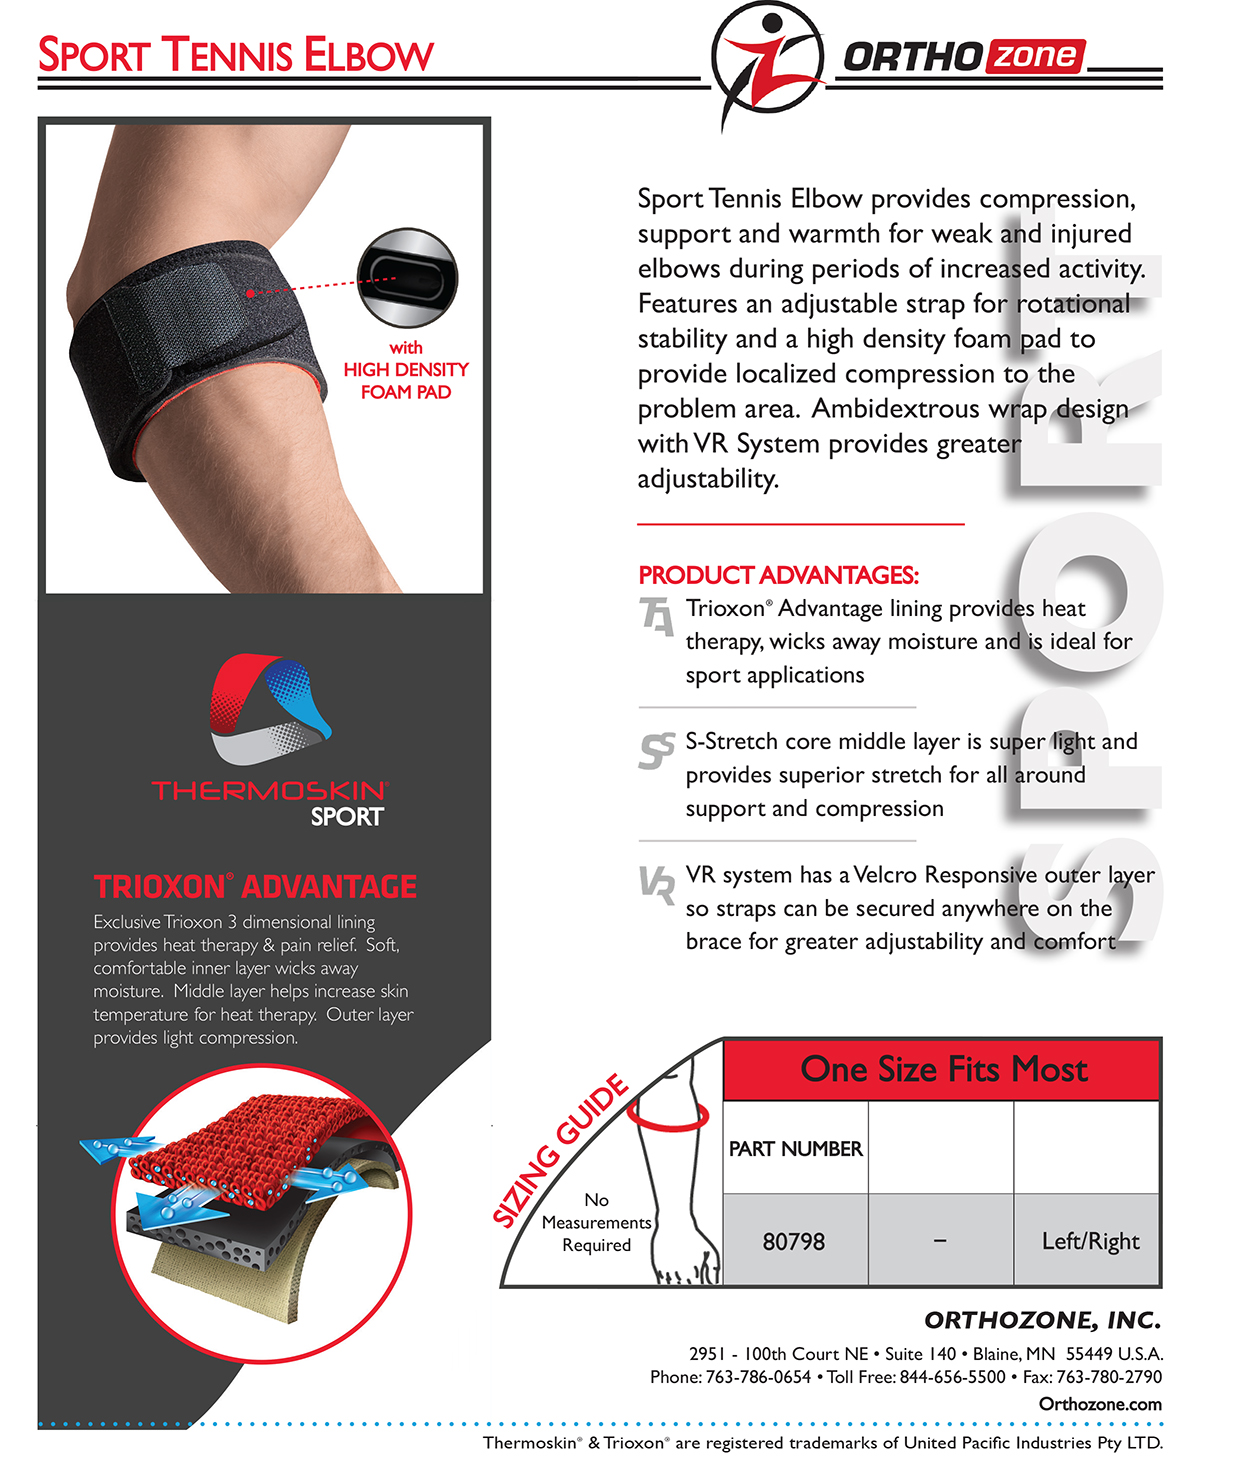 Thermoskin Sport Tennis Elbow, Black, One Size. $19.95 alternative product image 2